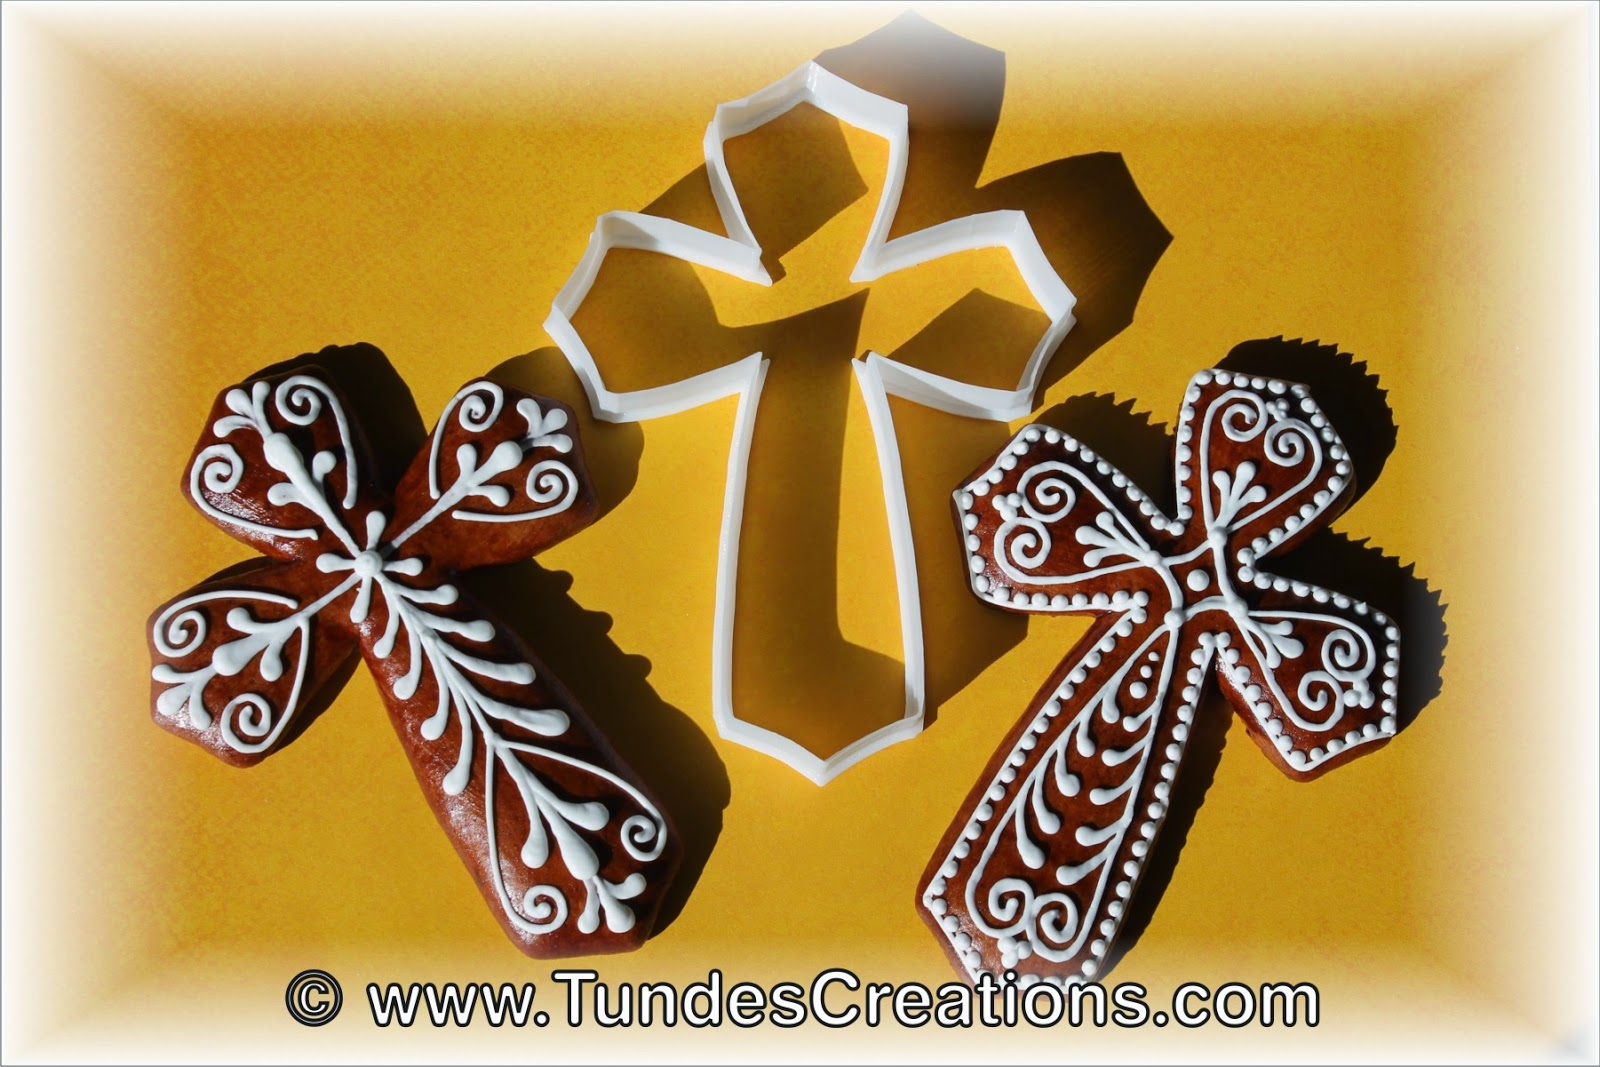 Gingerbread cross cookies